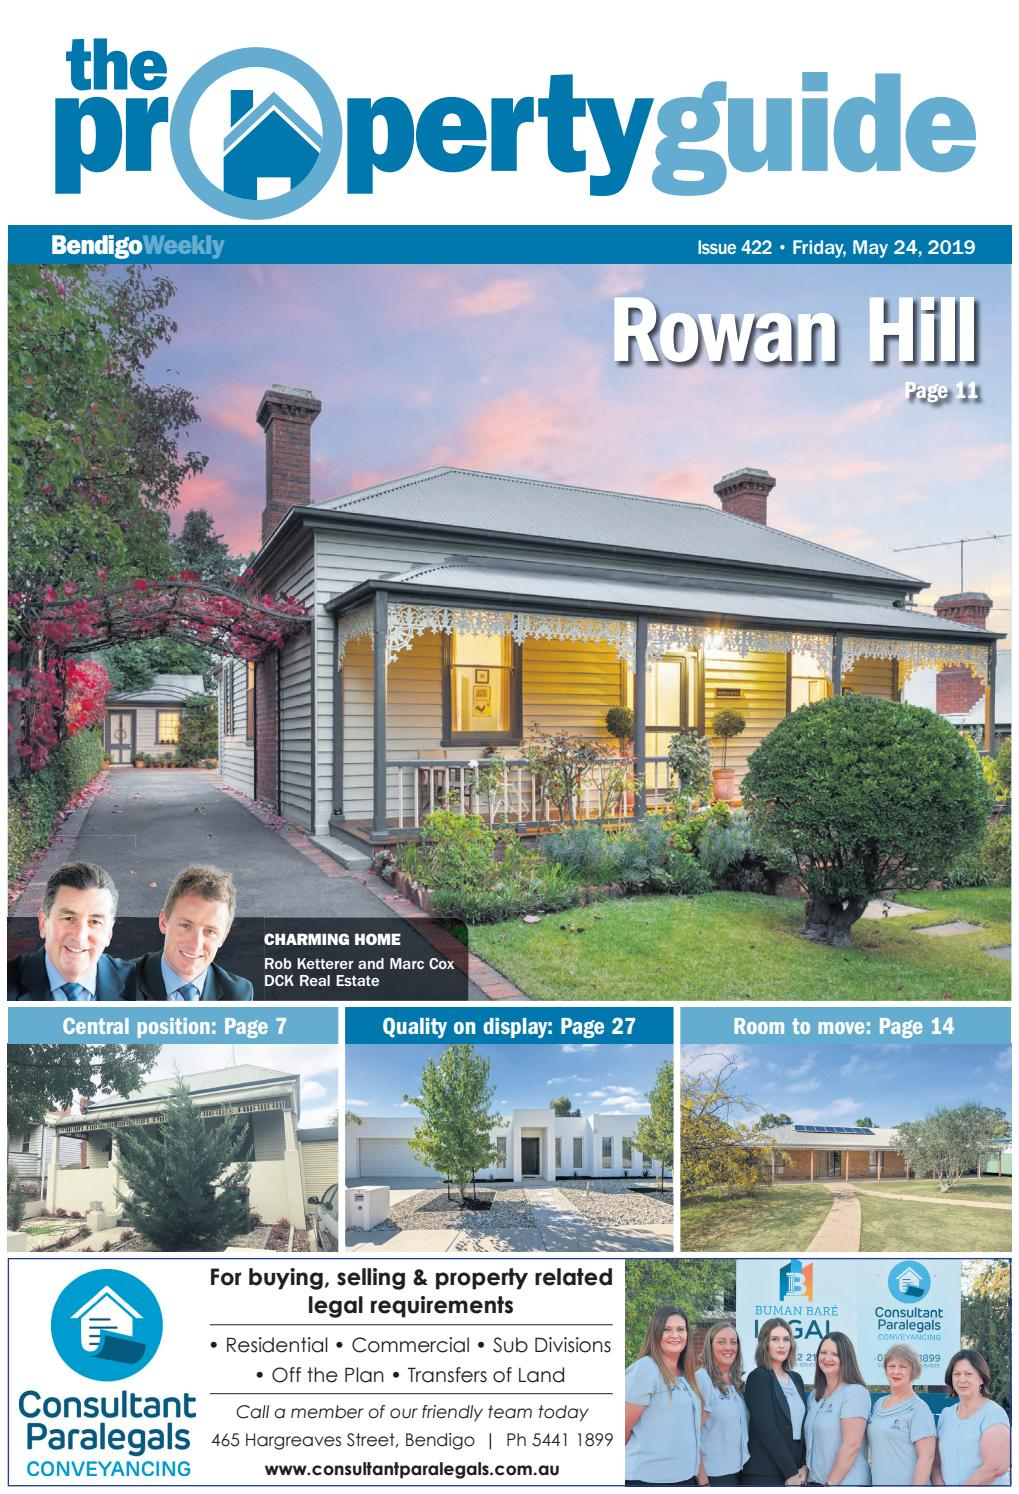 Bendigo Weekly Property Guide 422 by Bendigo Weekly - issuu